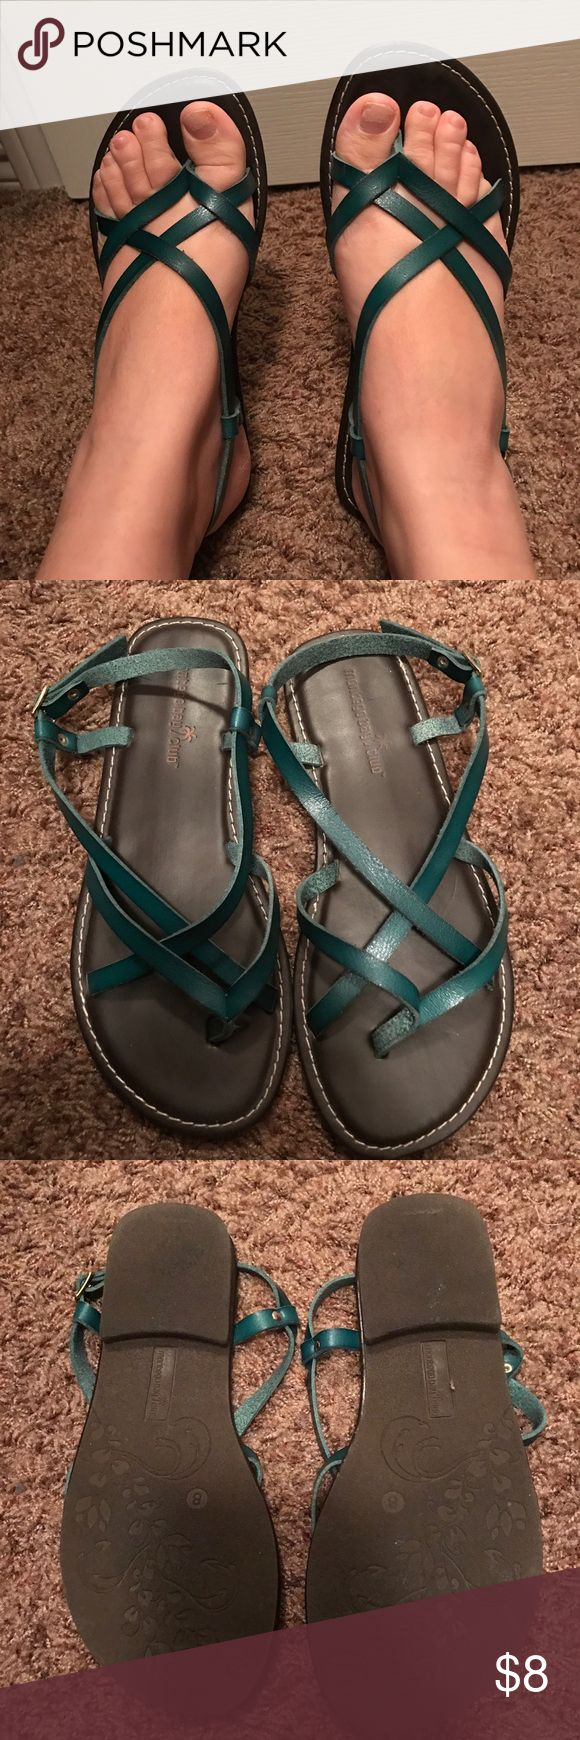 Teal sandals Teal strappy sandals. Only worn a couple of times. Shoes Sandals